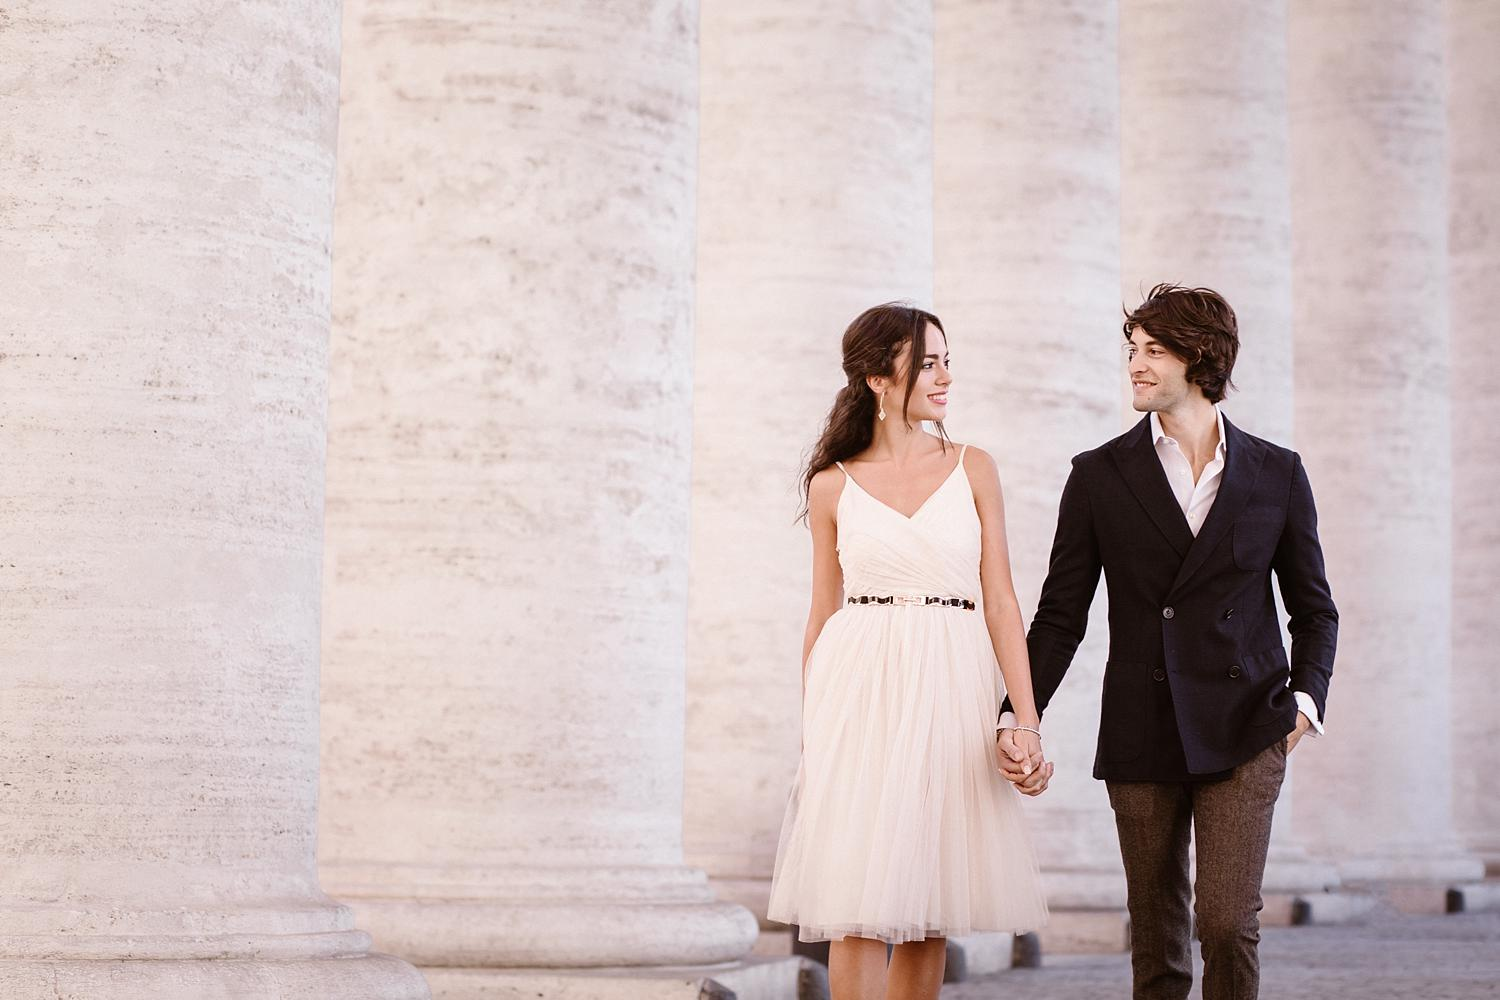 gs weddingphotographer rome 01 - Giulia & Simone - Elegant Couple Shooting in Rome